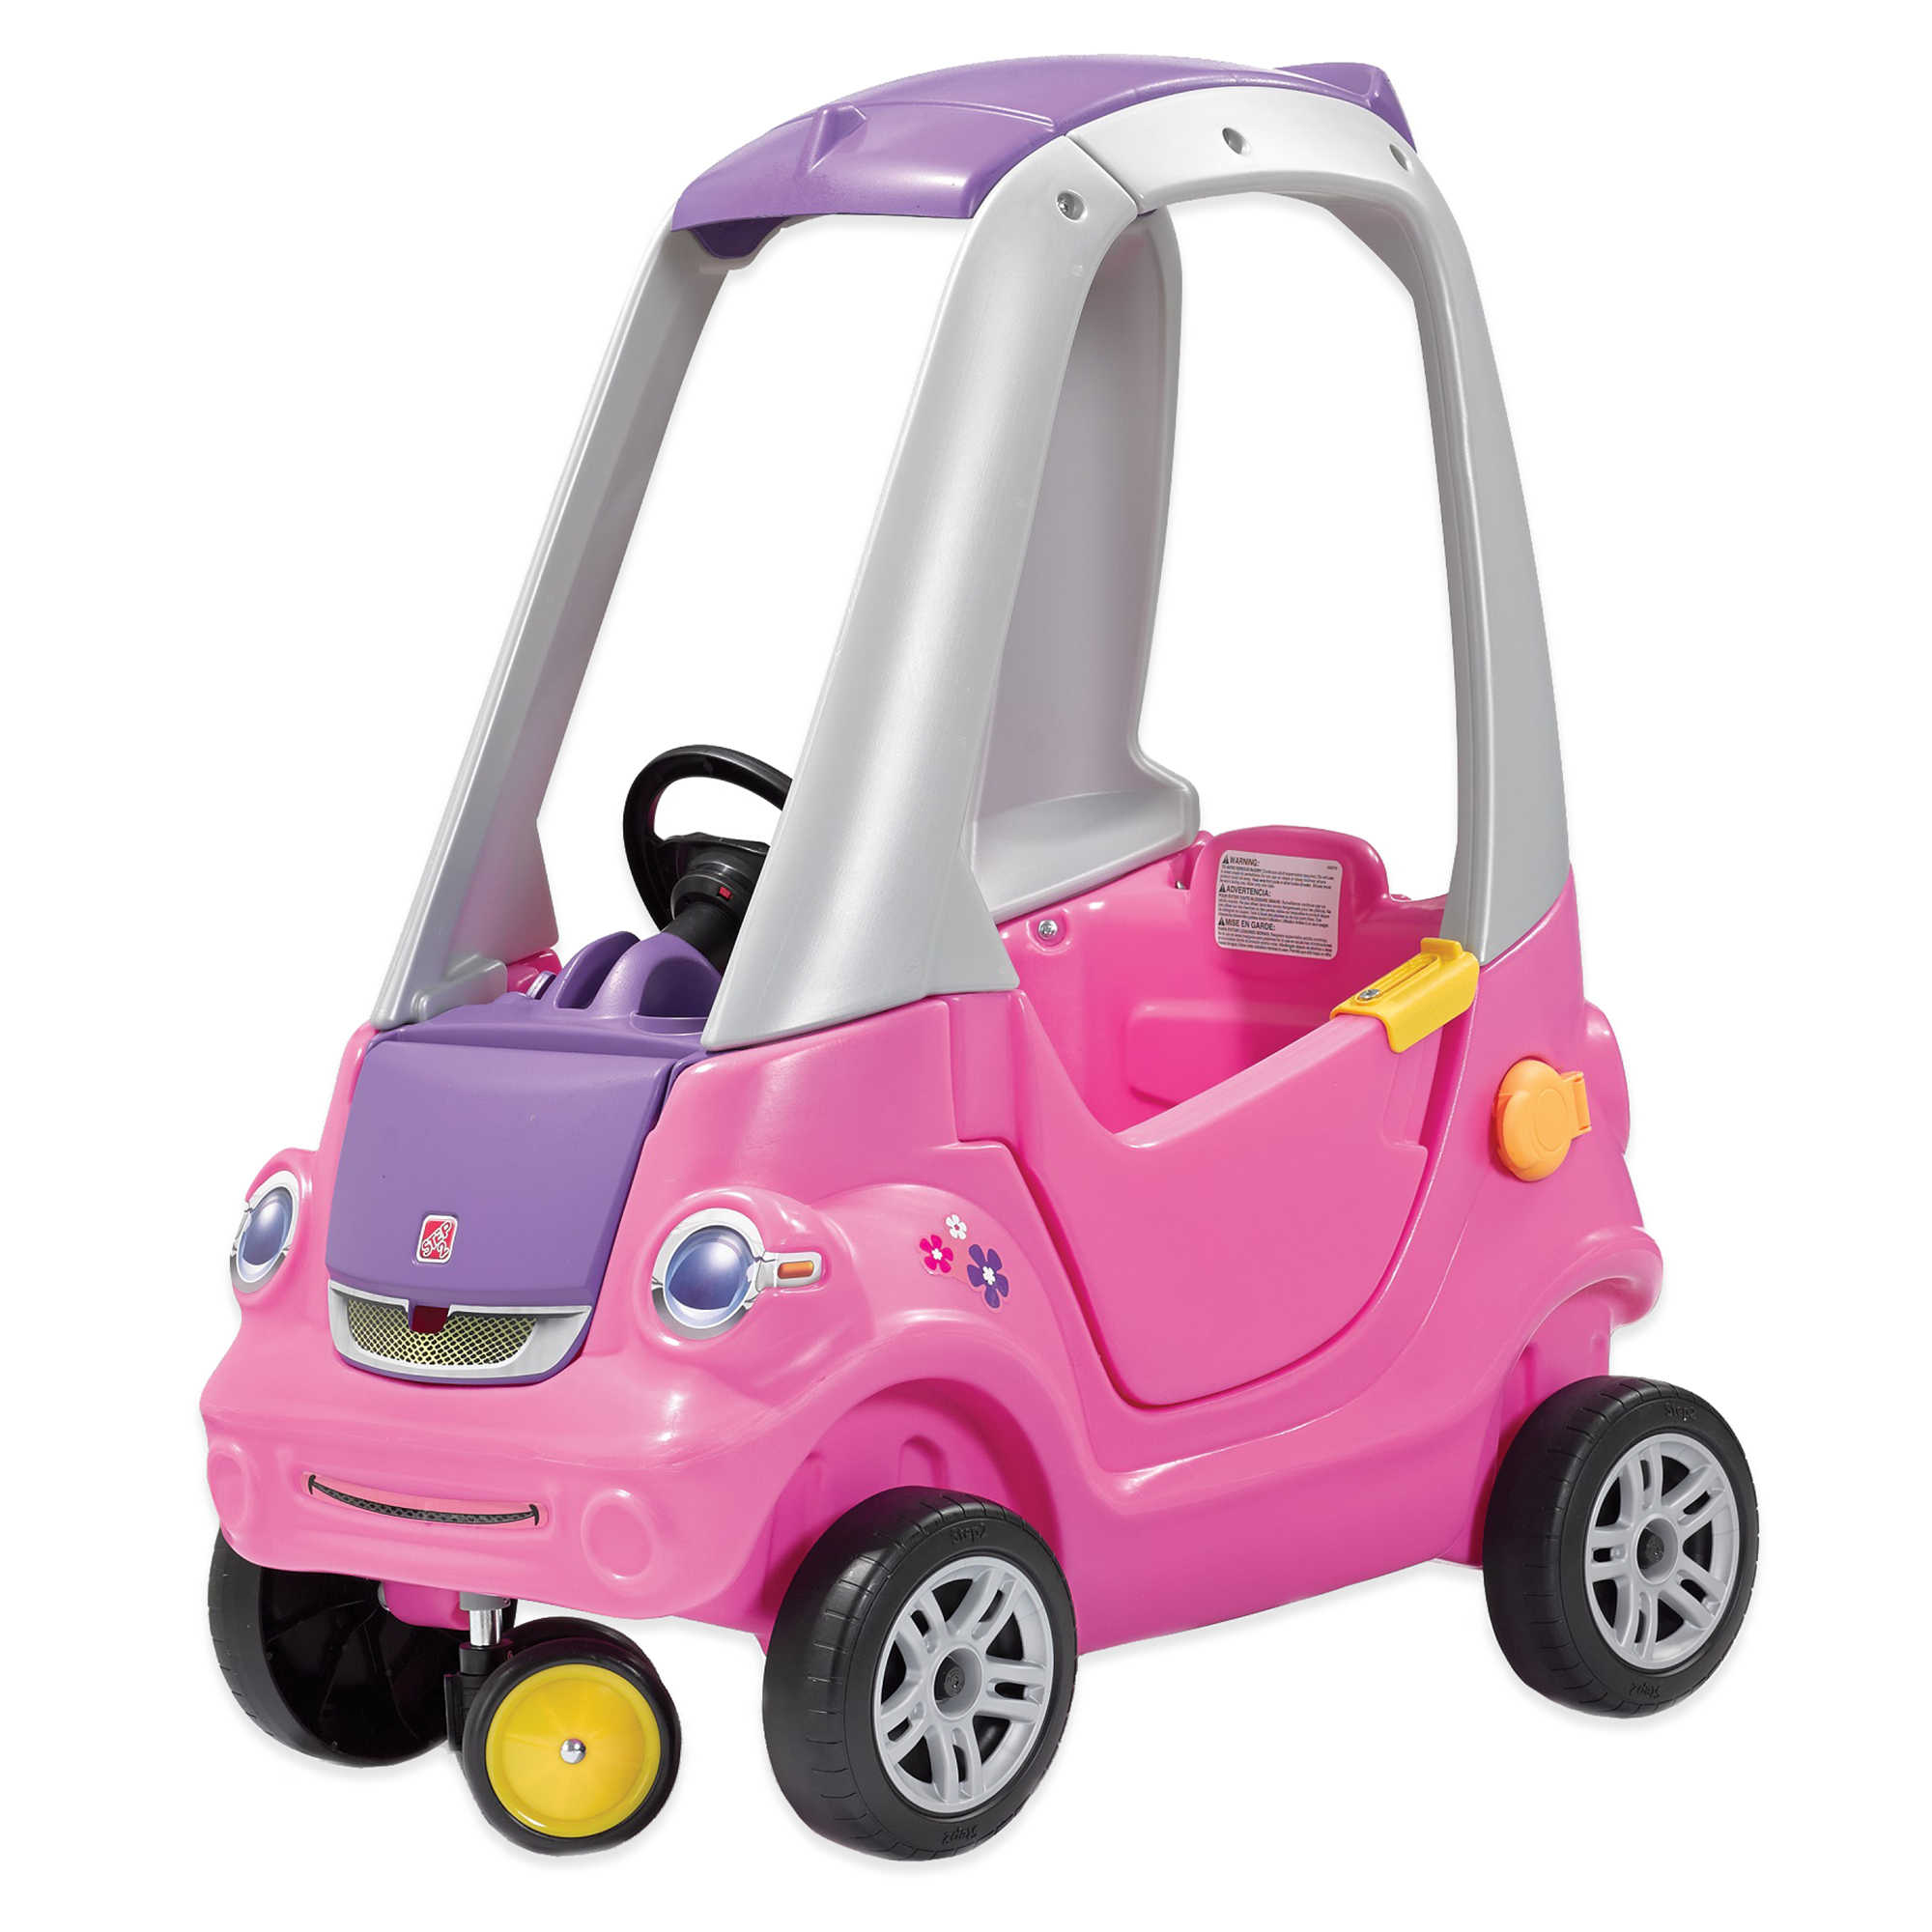 Step2 Easy Turn Coupe with cup holders for both parents and child, Pink